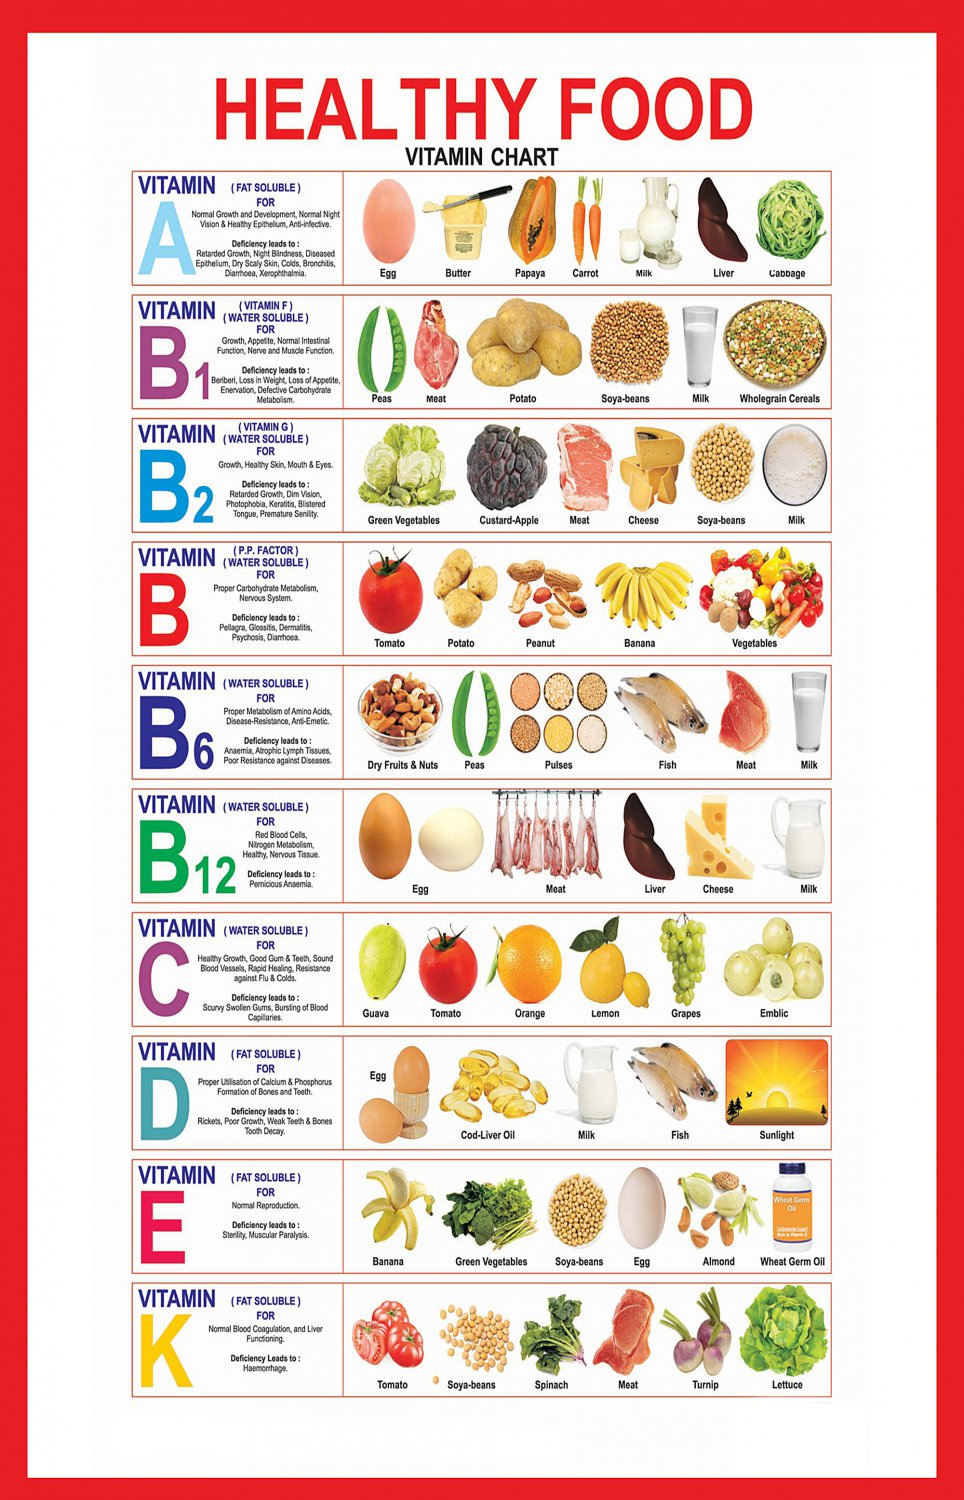 Healthy Food Vitamin Infographic Chart  18x28 inches Poster Print